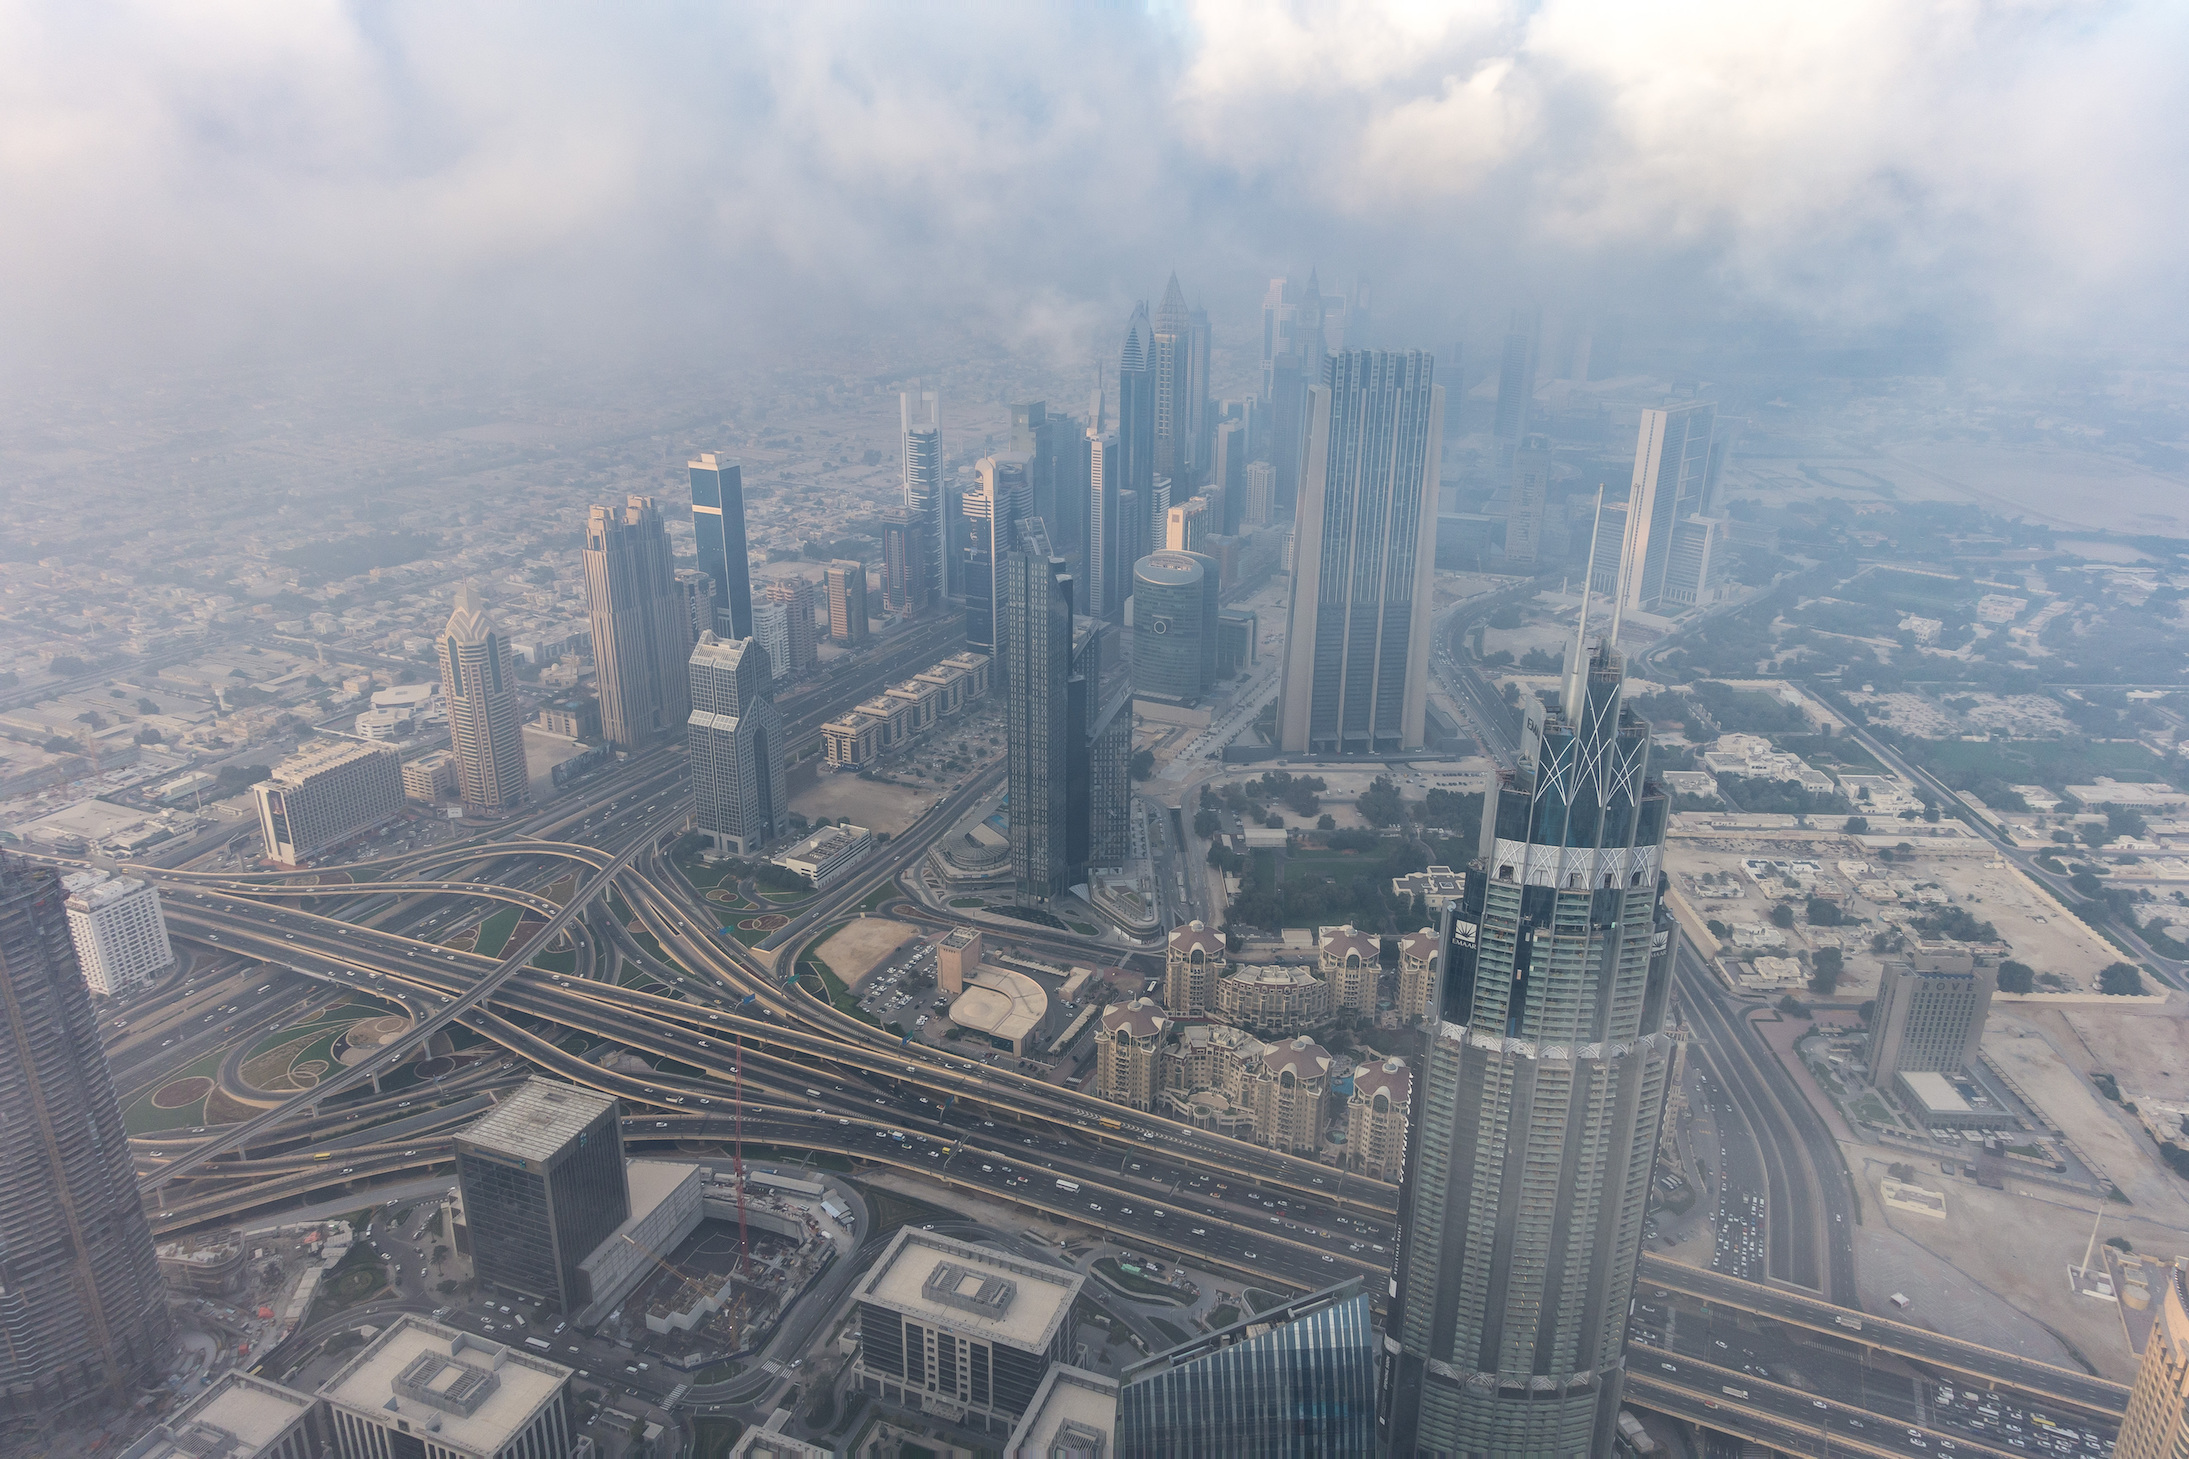 Expecting government action to combat pollution in the Middle East may not be as effective as private businesses offering green solutions.